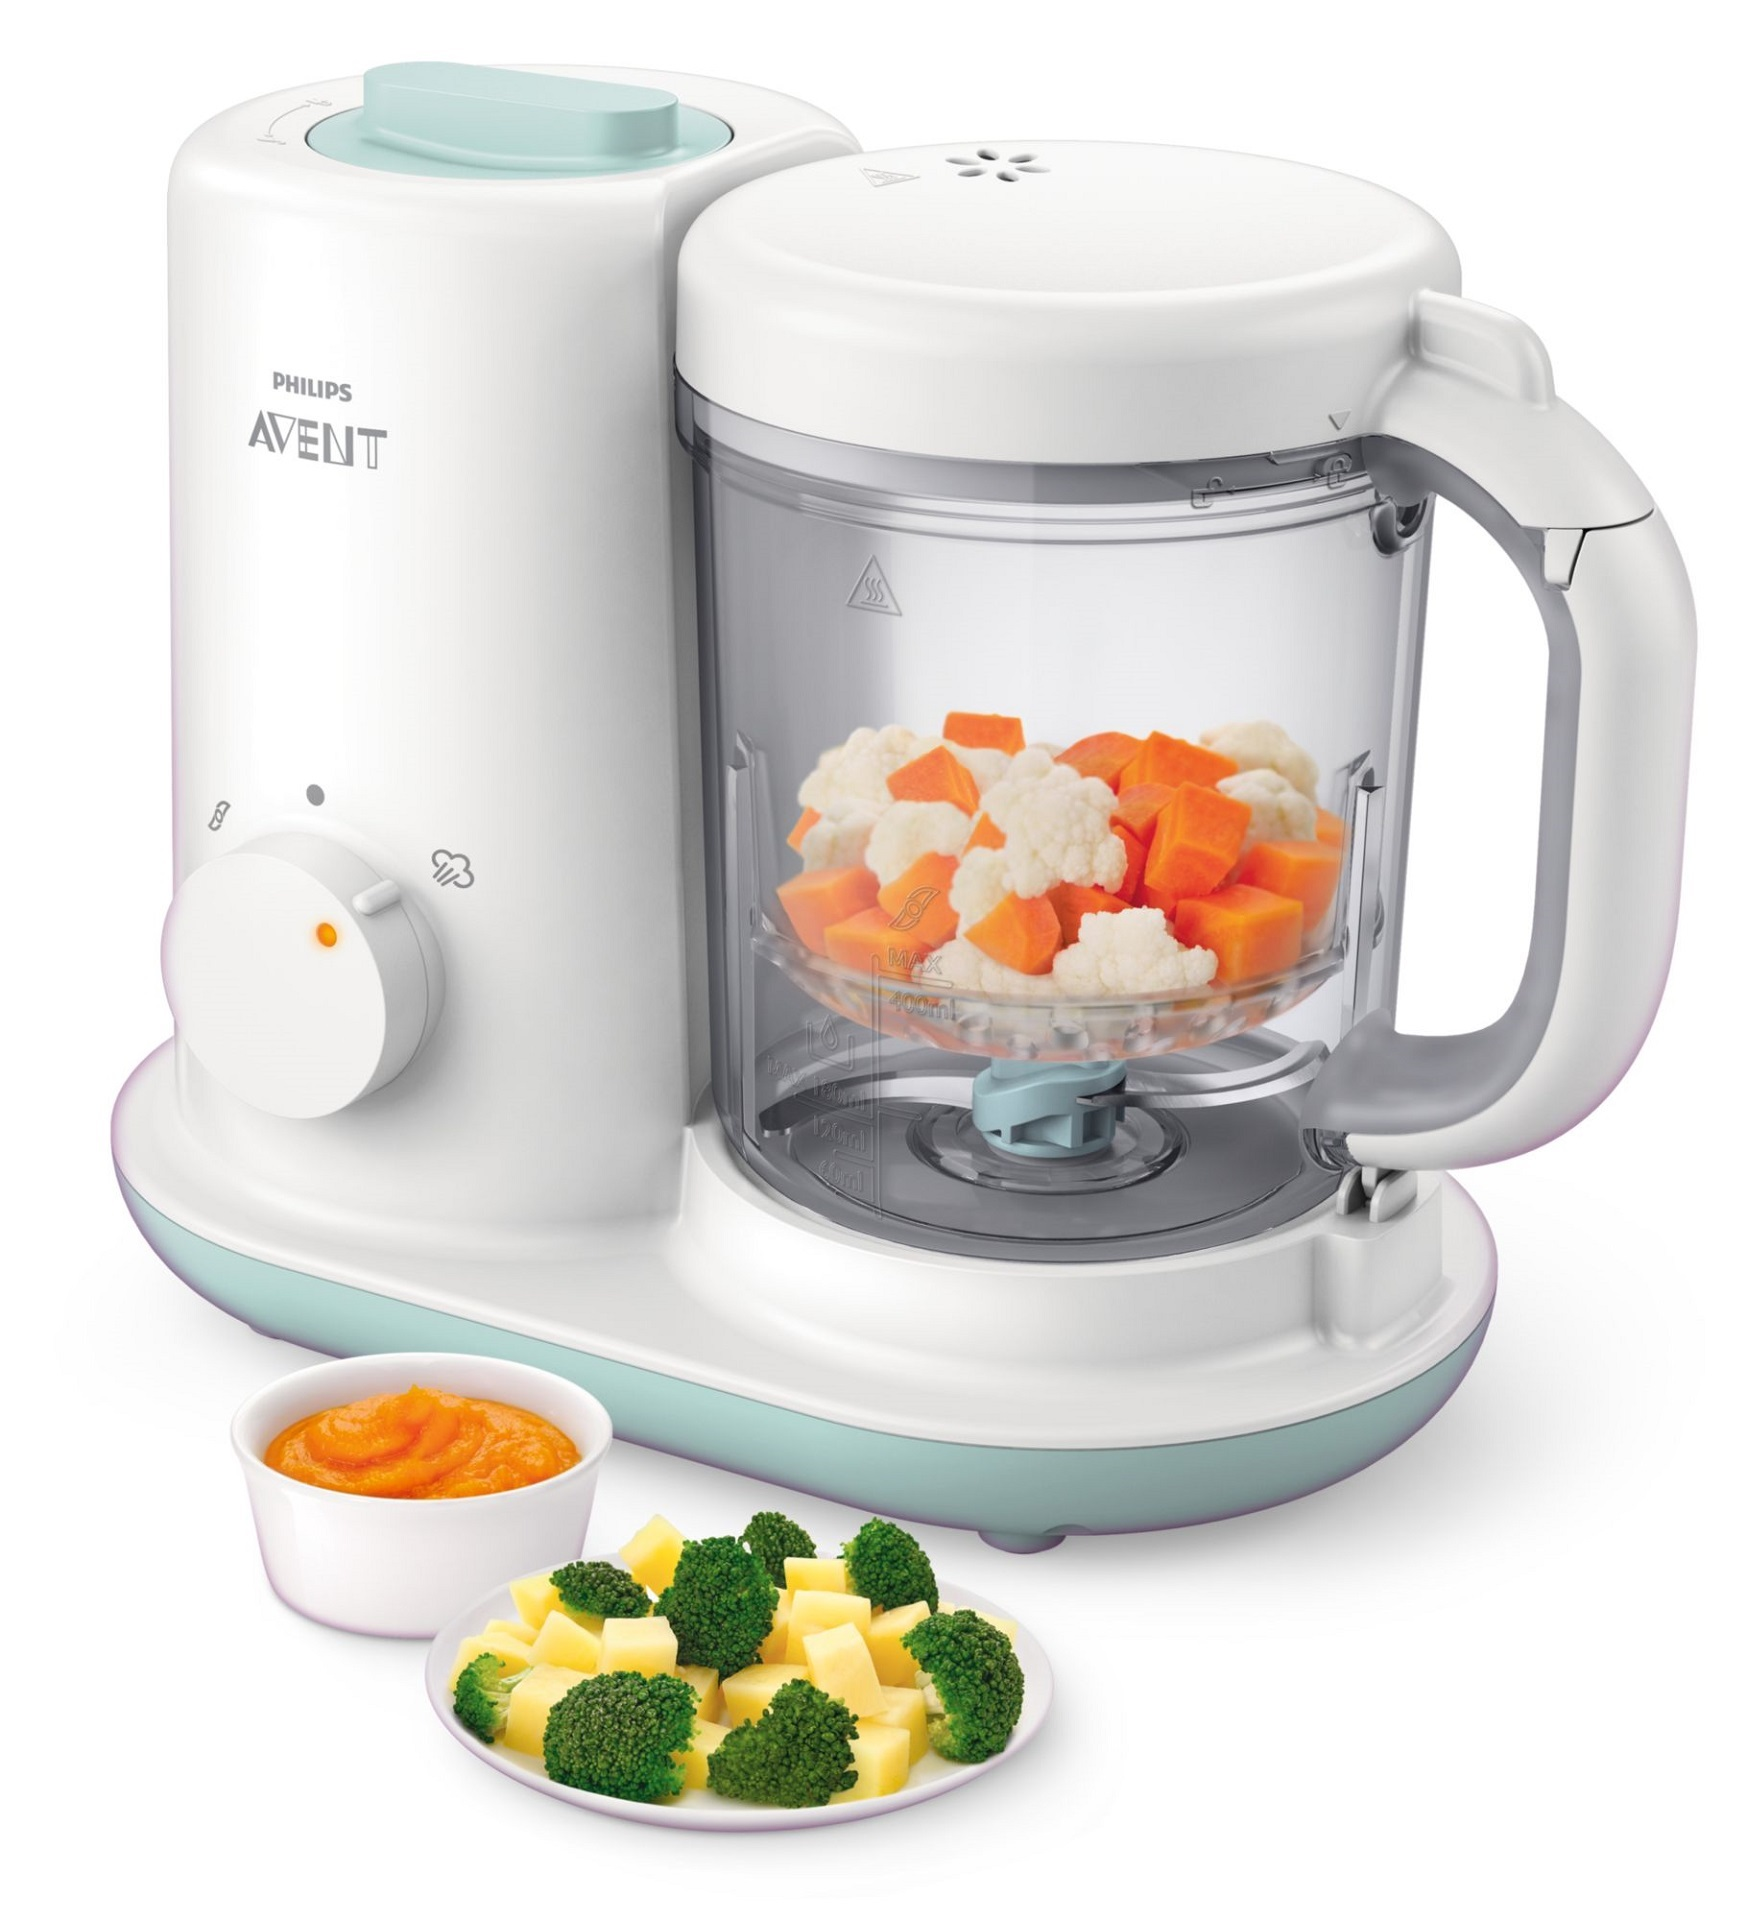 Avent Philips Baby Food Maker Viva Collection Buy At